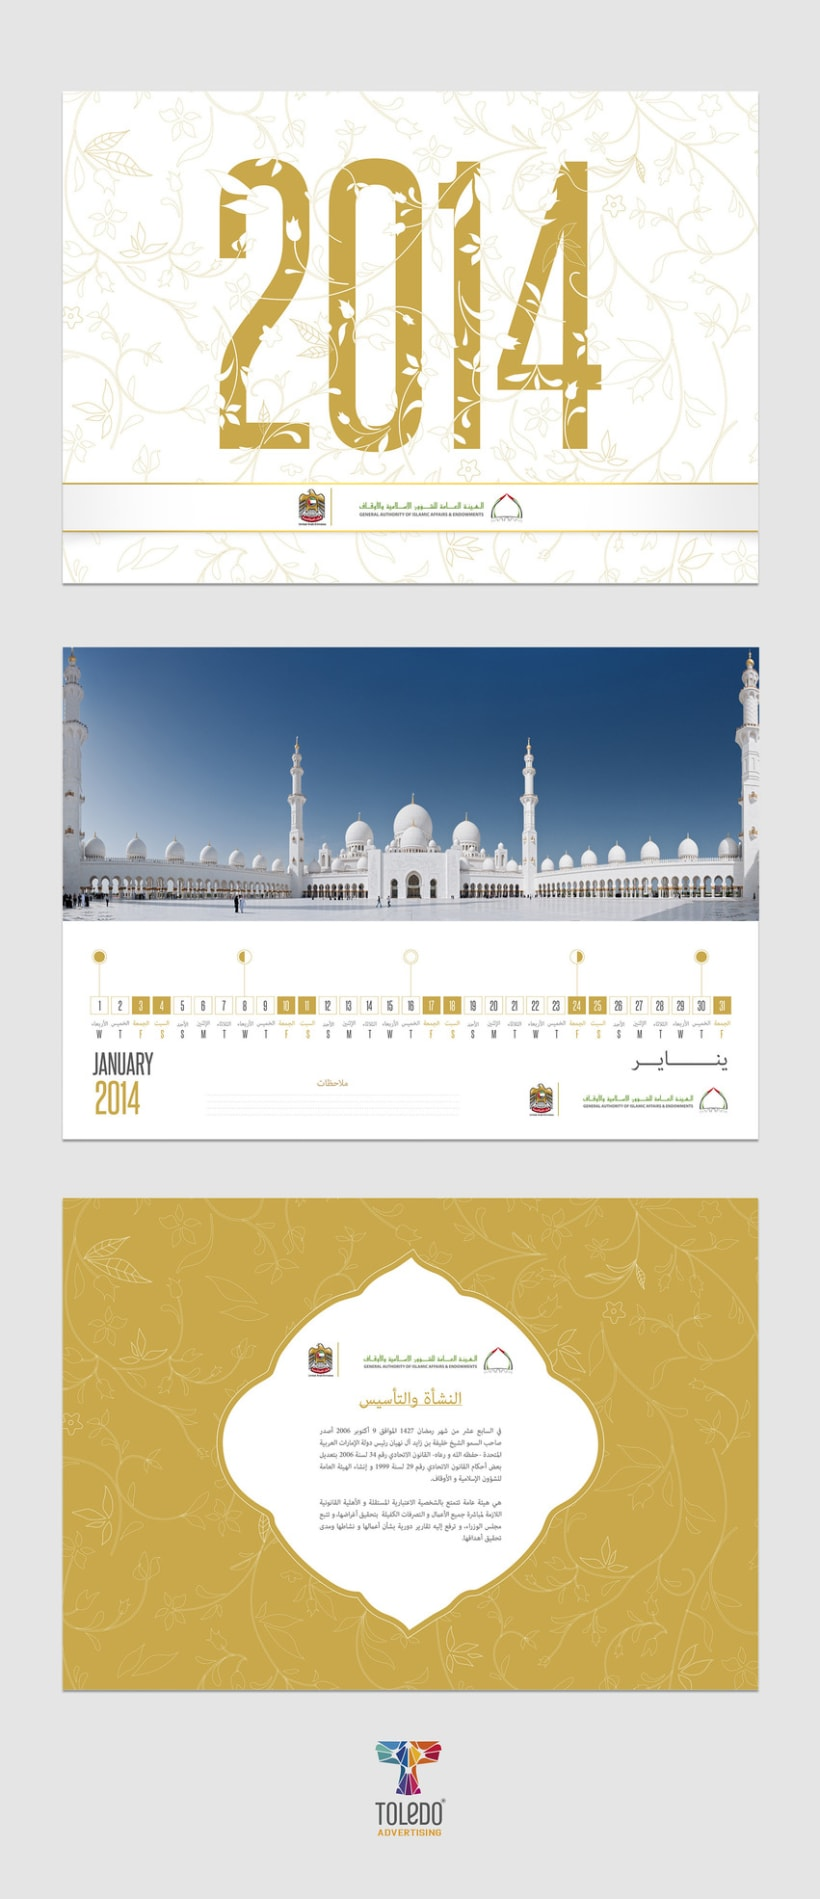 Calendario para General Autorithy of Islamic A ffairs & Endowments, trabajando para Toledo Advertising Abu Dhabi. 1